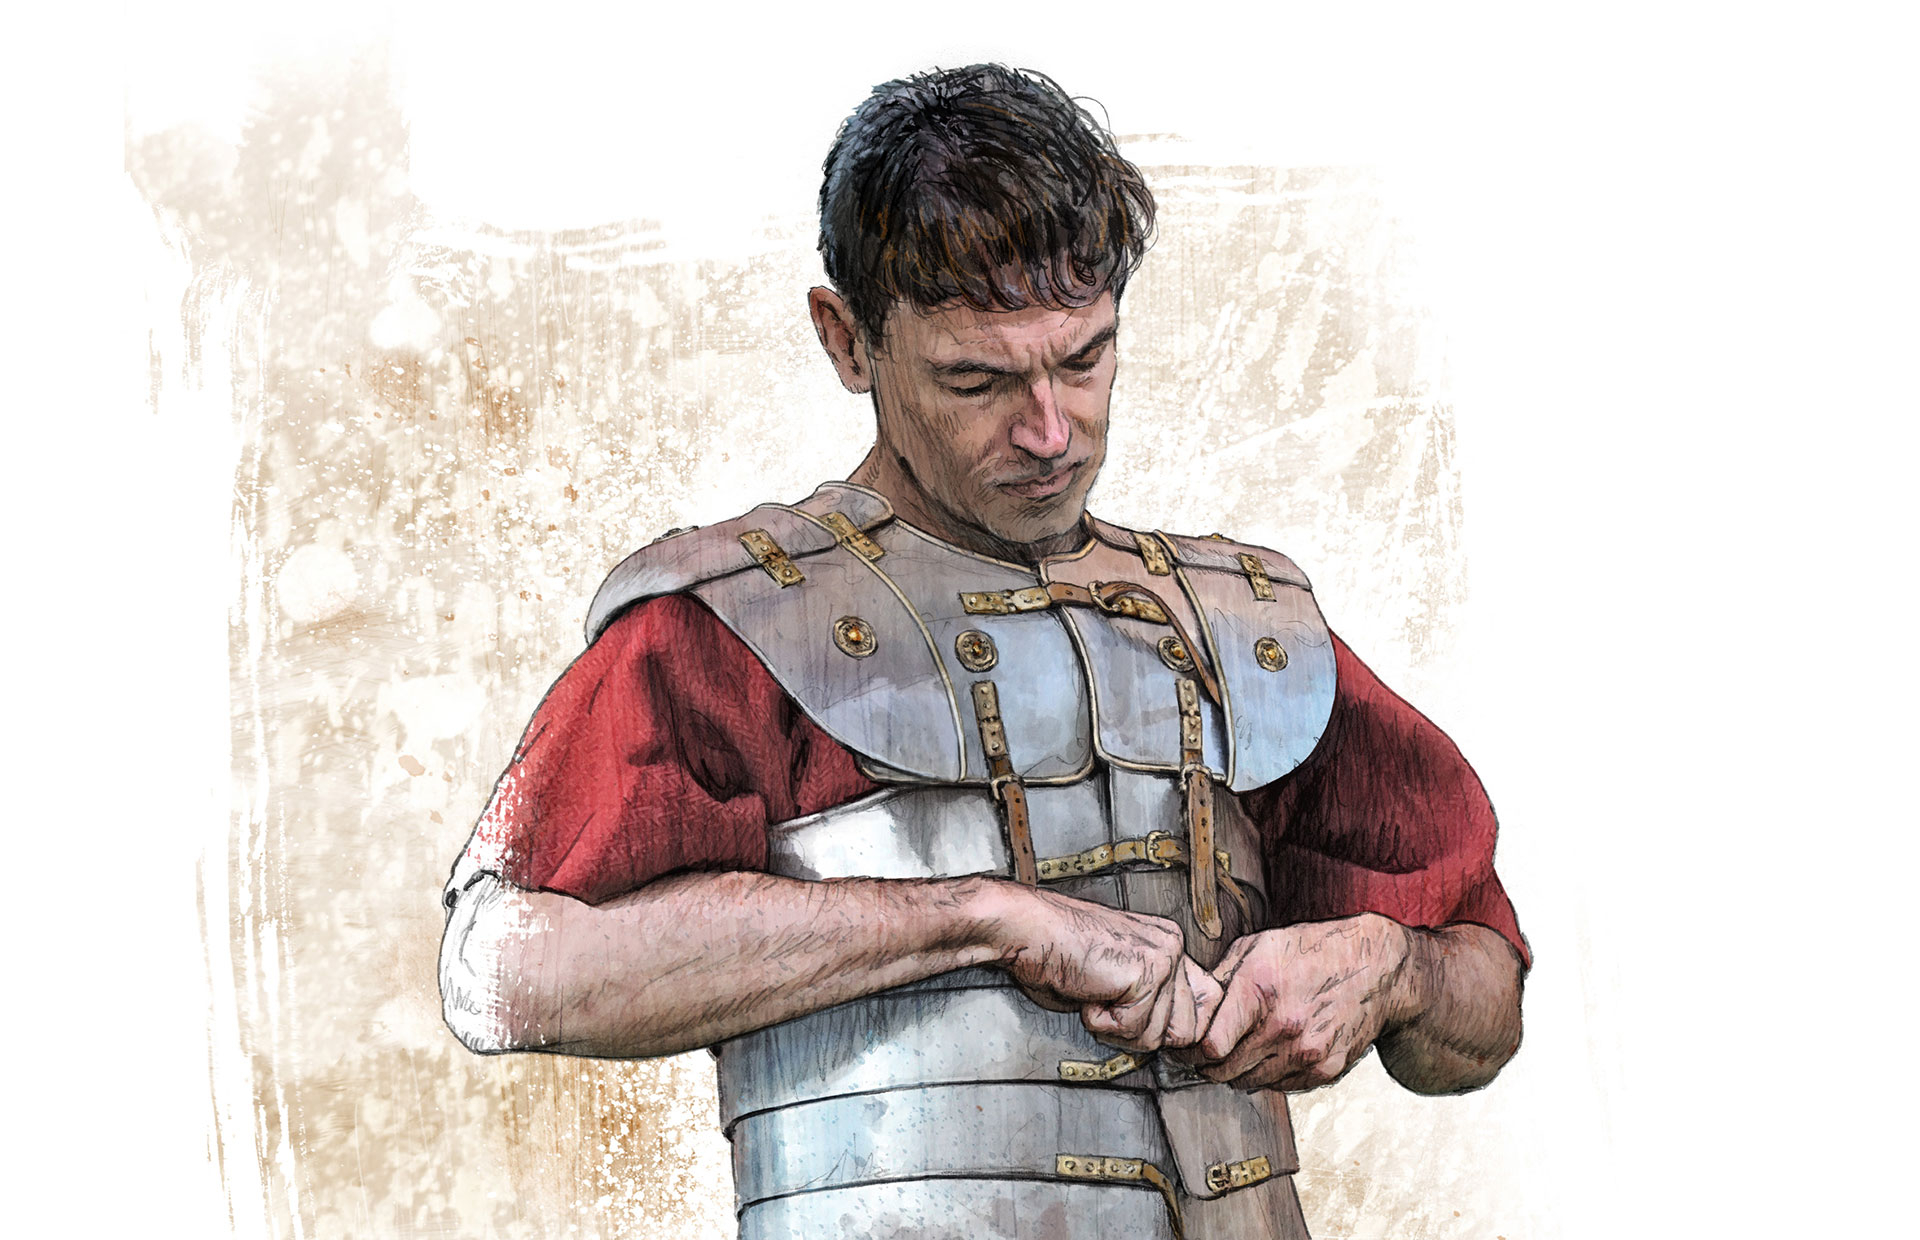 Oldest Roman body armour found in Germany